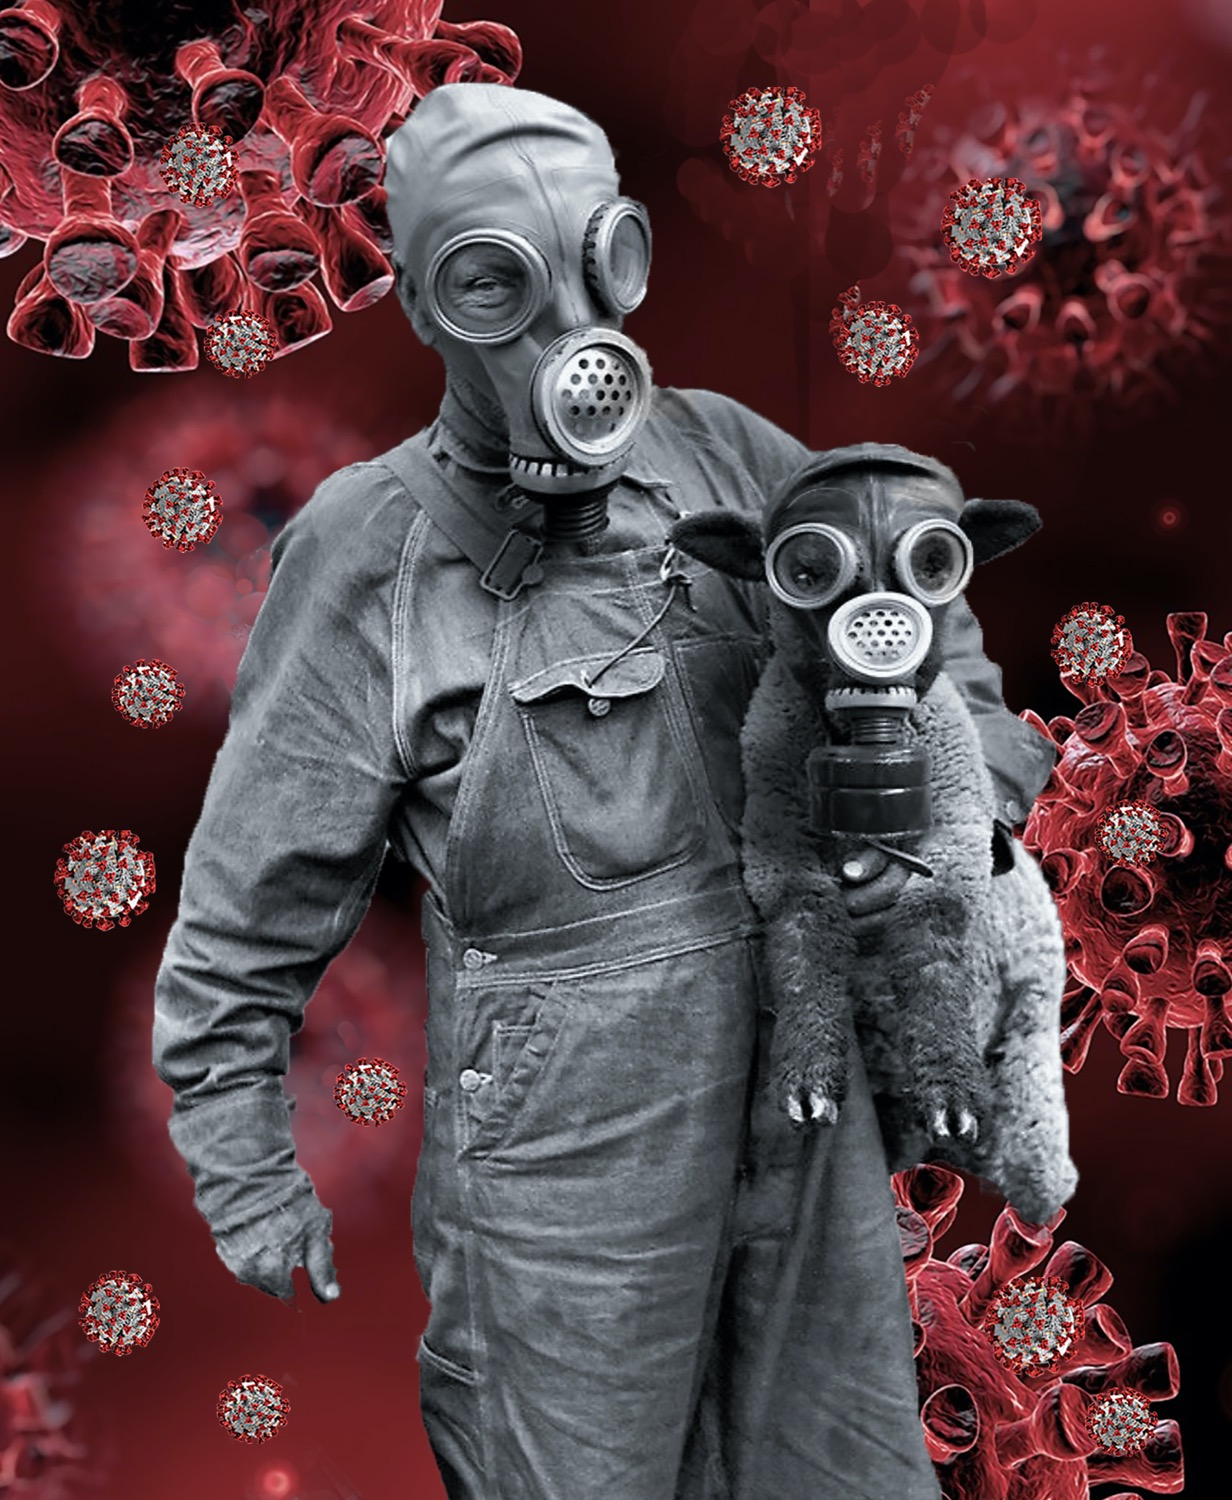 art of an image of a person in a gas mask carrying a lamb, also in a gas mask, superimposed over an abstract background of covid-19 particles